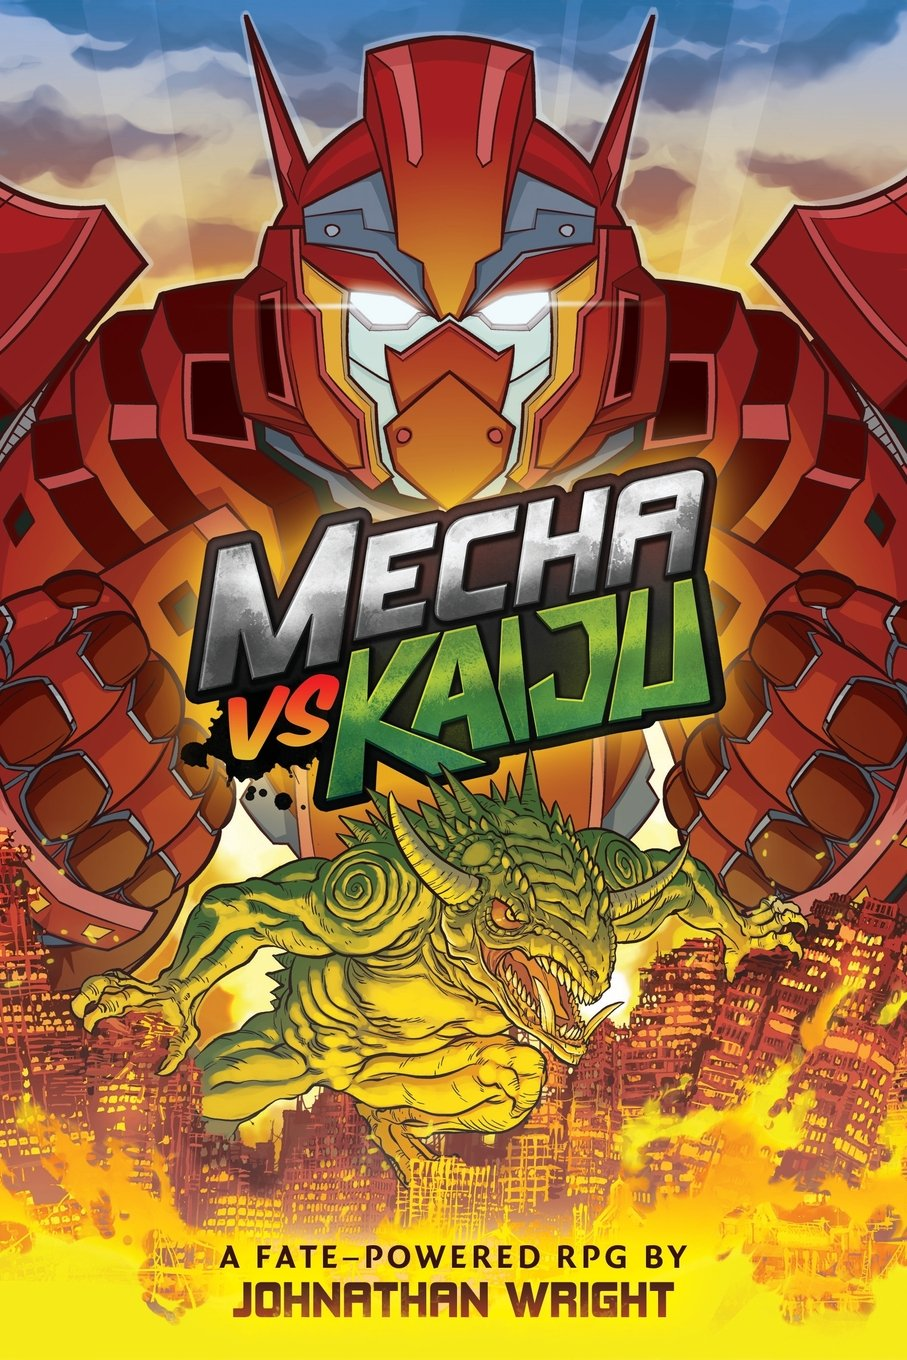 Mecha Vs Kaiju: A Science Fiction Anime Roleplaying Game for Fate Core